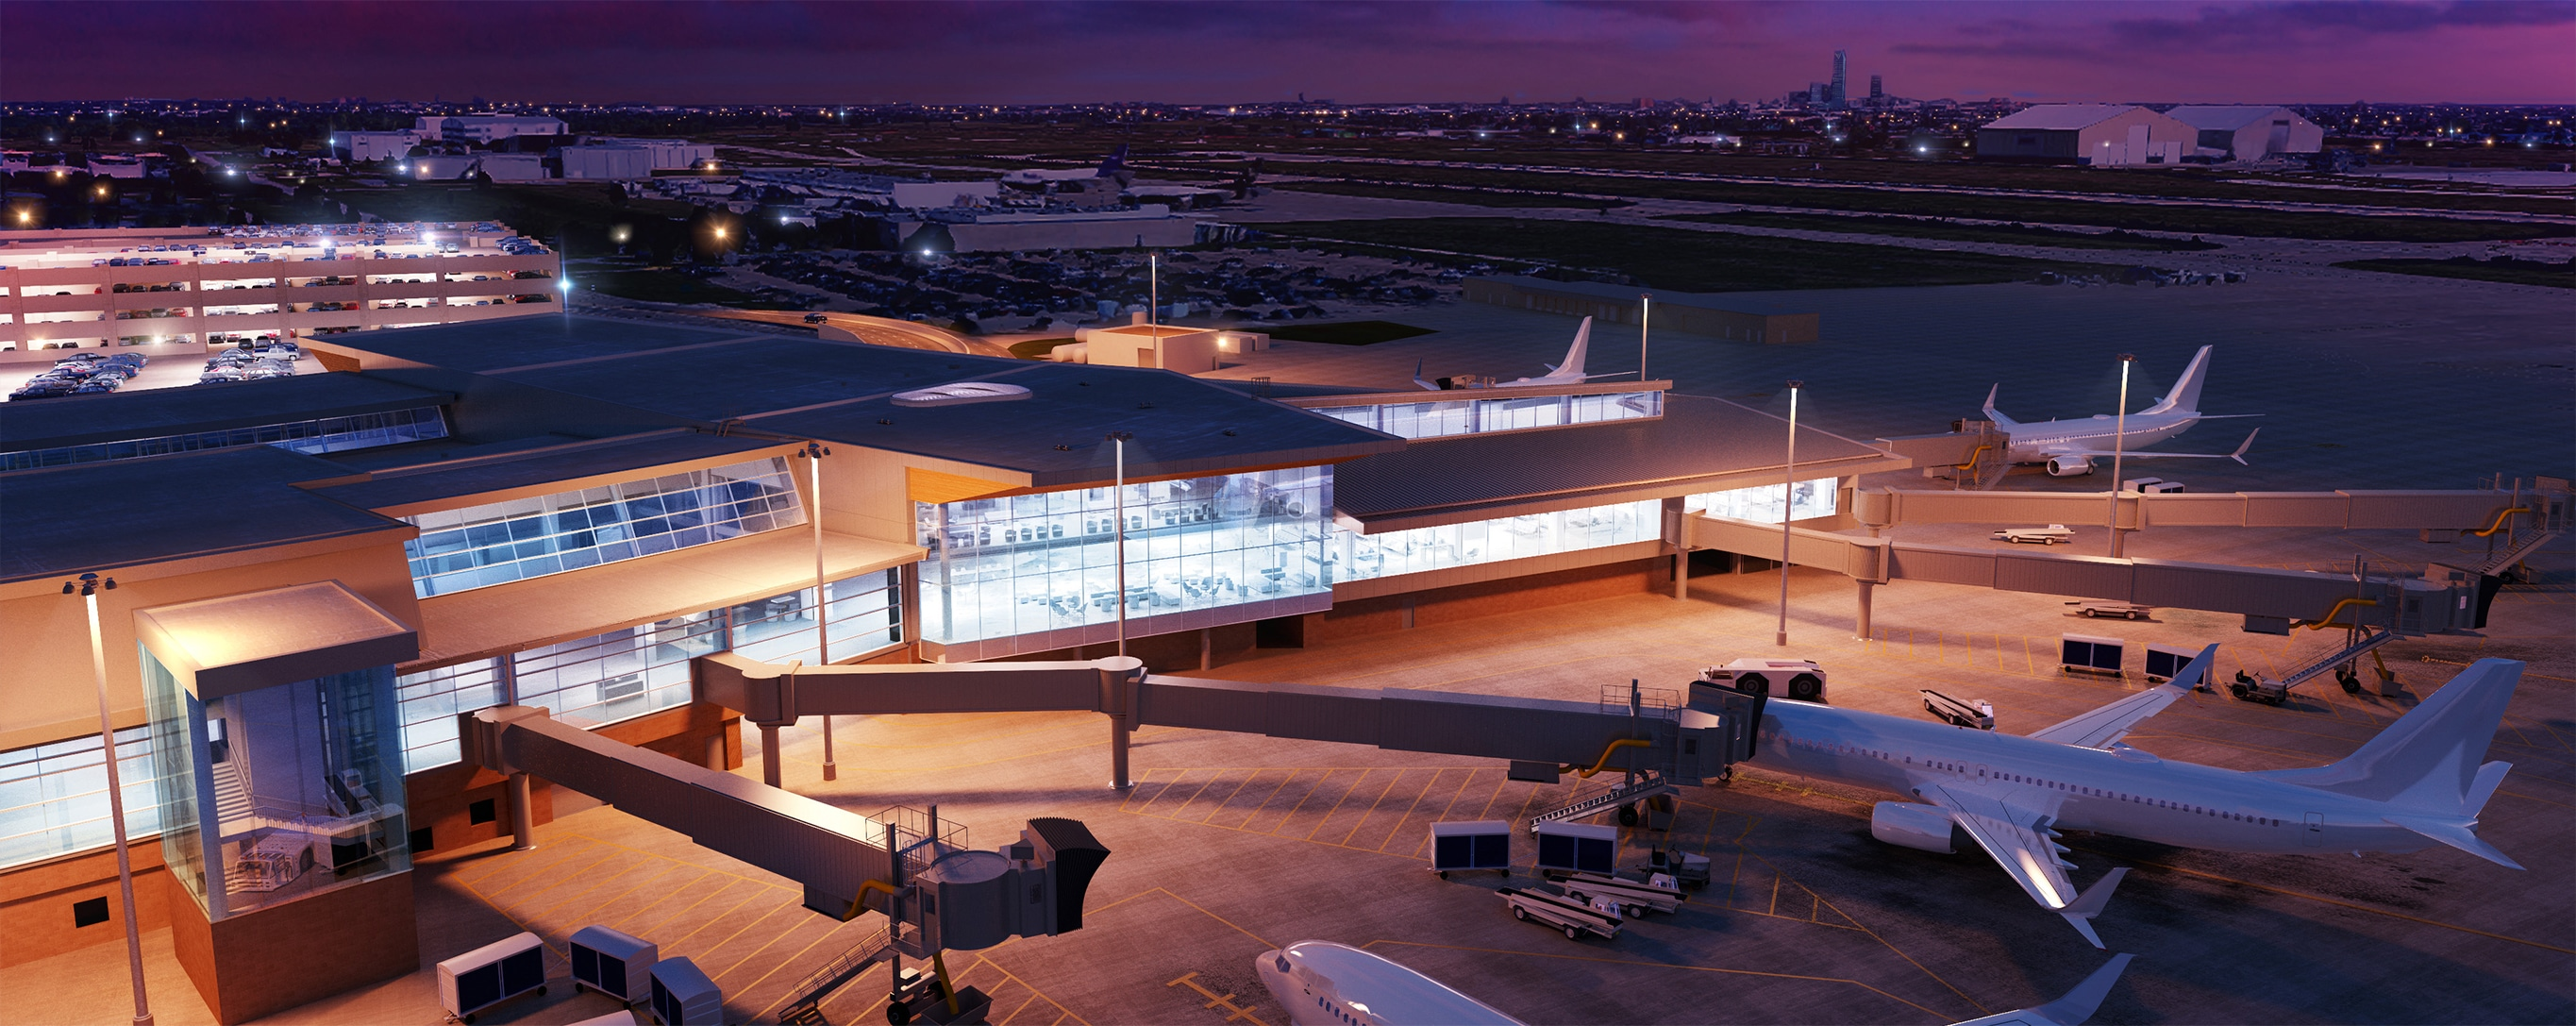 Rendering of the new portion of the terminal building from airside perspective.